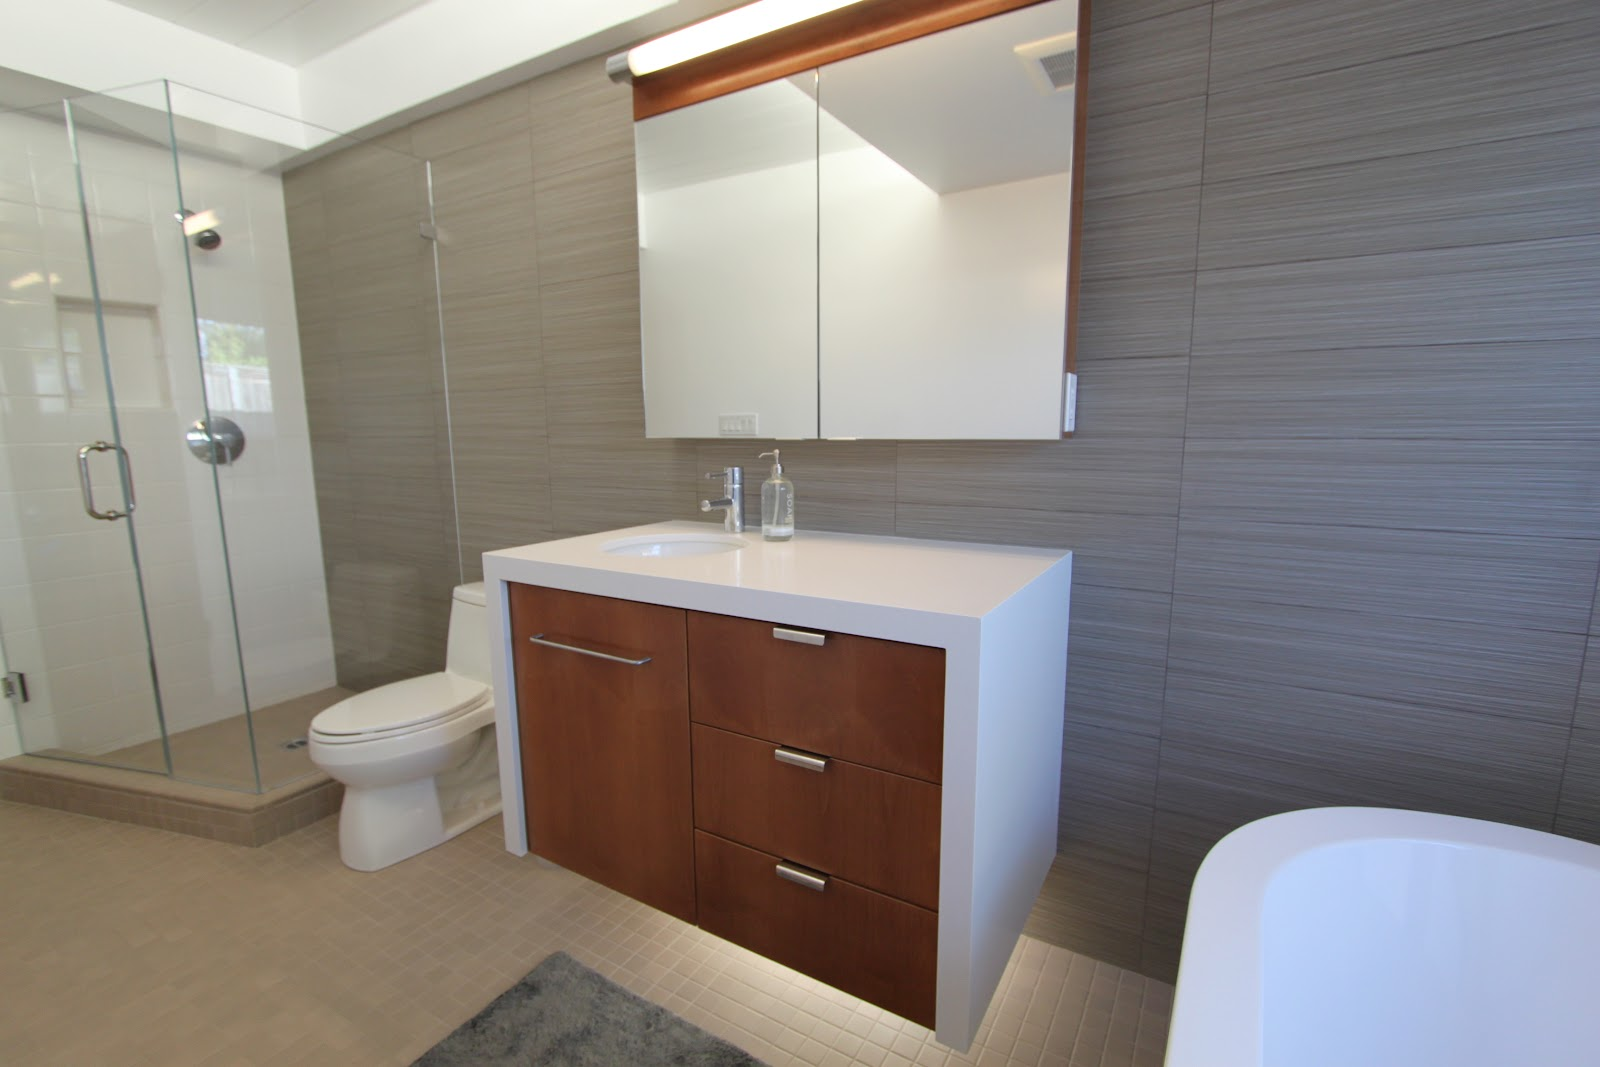 the new distinctly modern cabinets with a view of the clear glass shower - Bathroom Remodel Modern